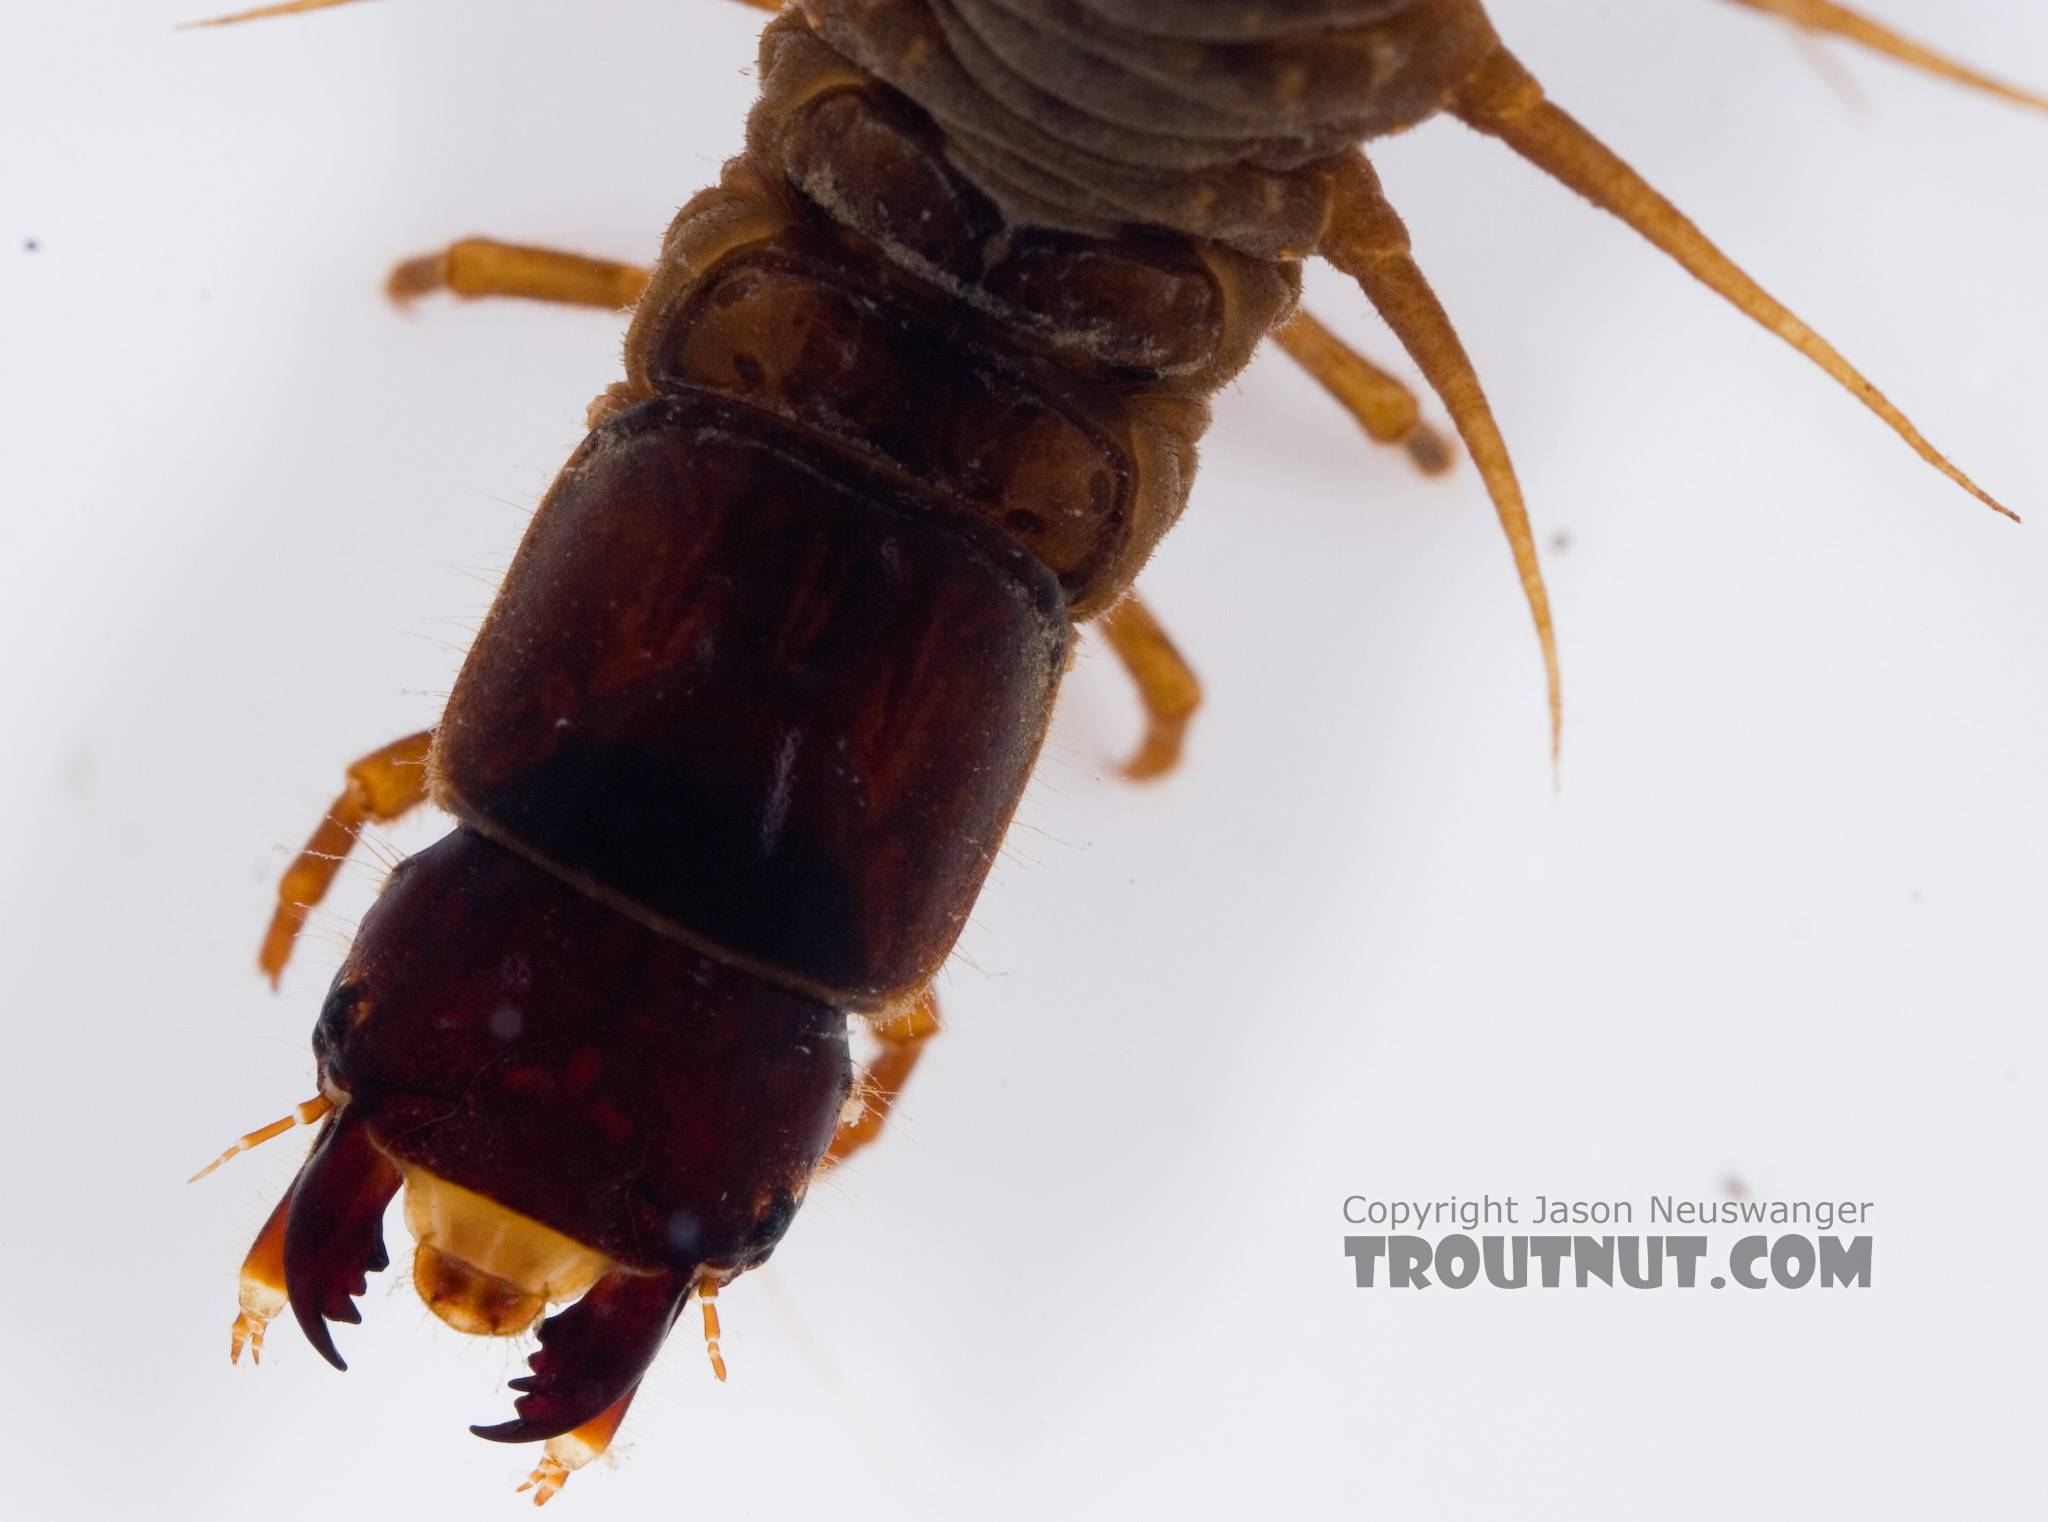 Nigronia serricornis (Fishfly) Hellgrammite Larva from Factory Brook in New York